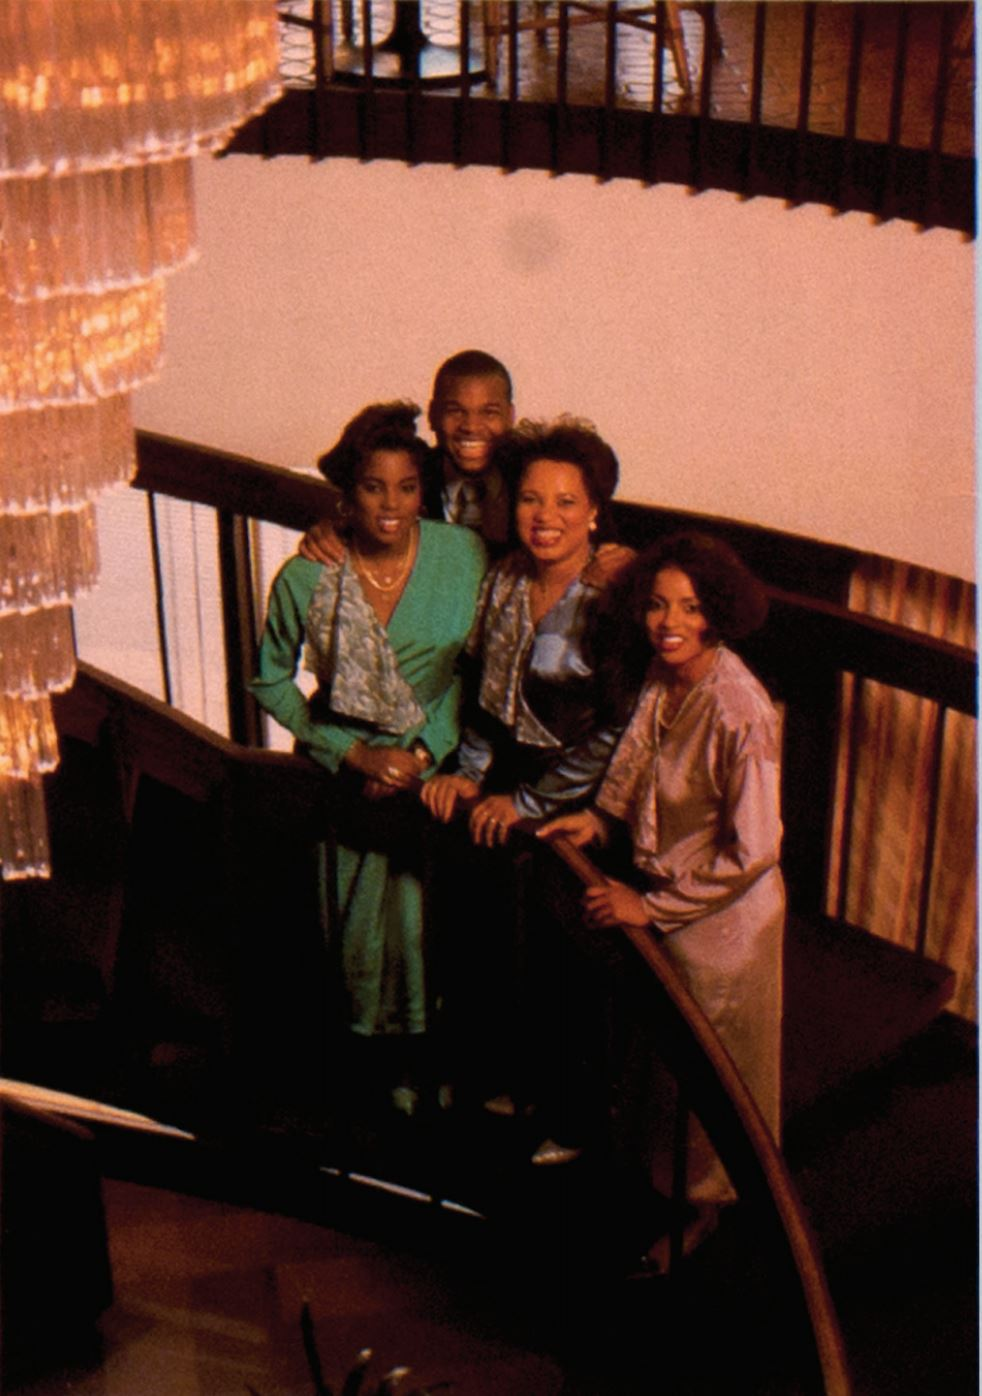 The Nelson Family - Charrisse Nelson, paul n. Nelson jr, dr. Charlene neslon, and their beautiful mother.(1986)